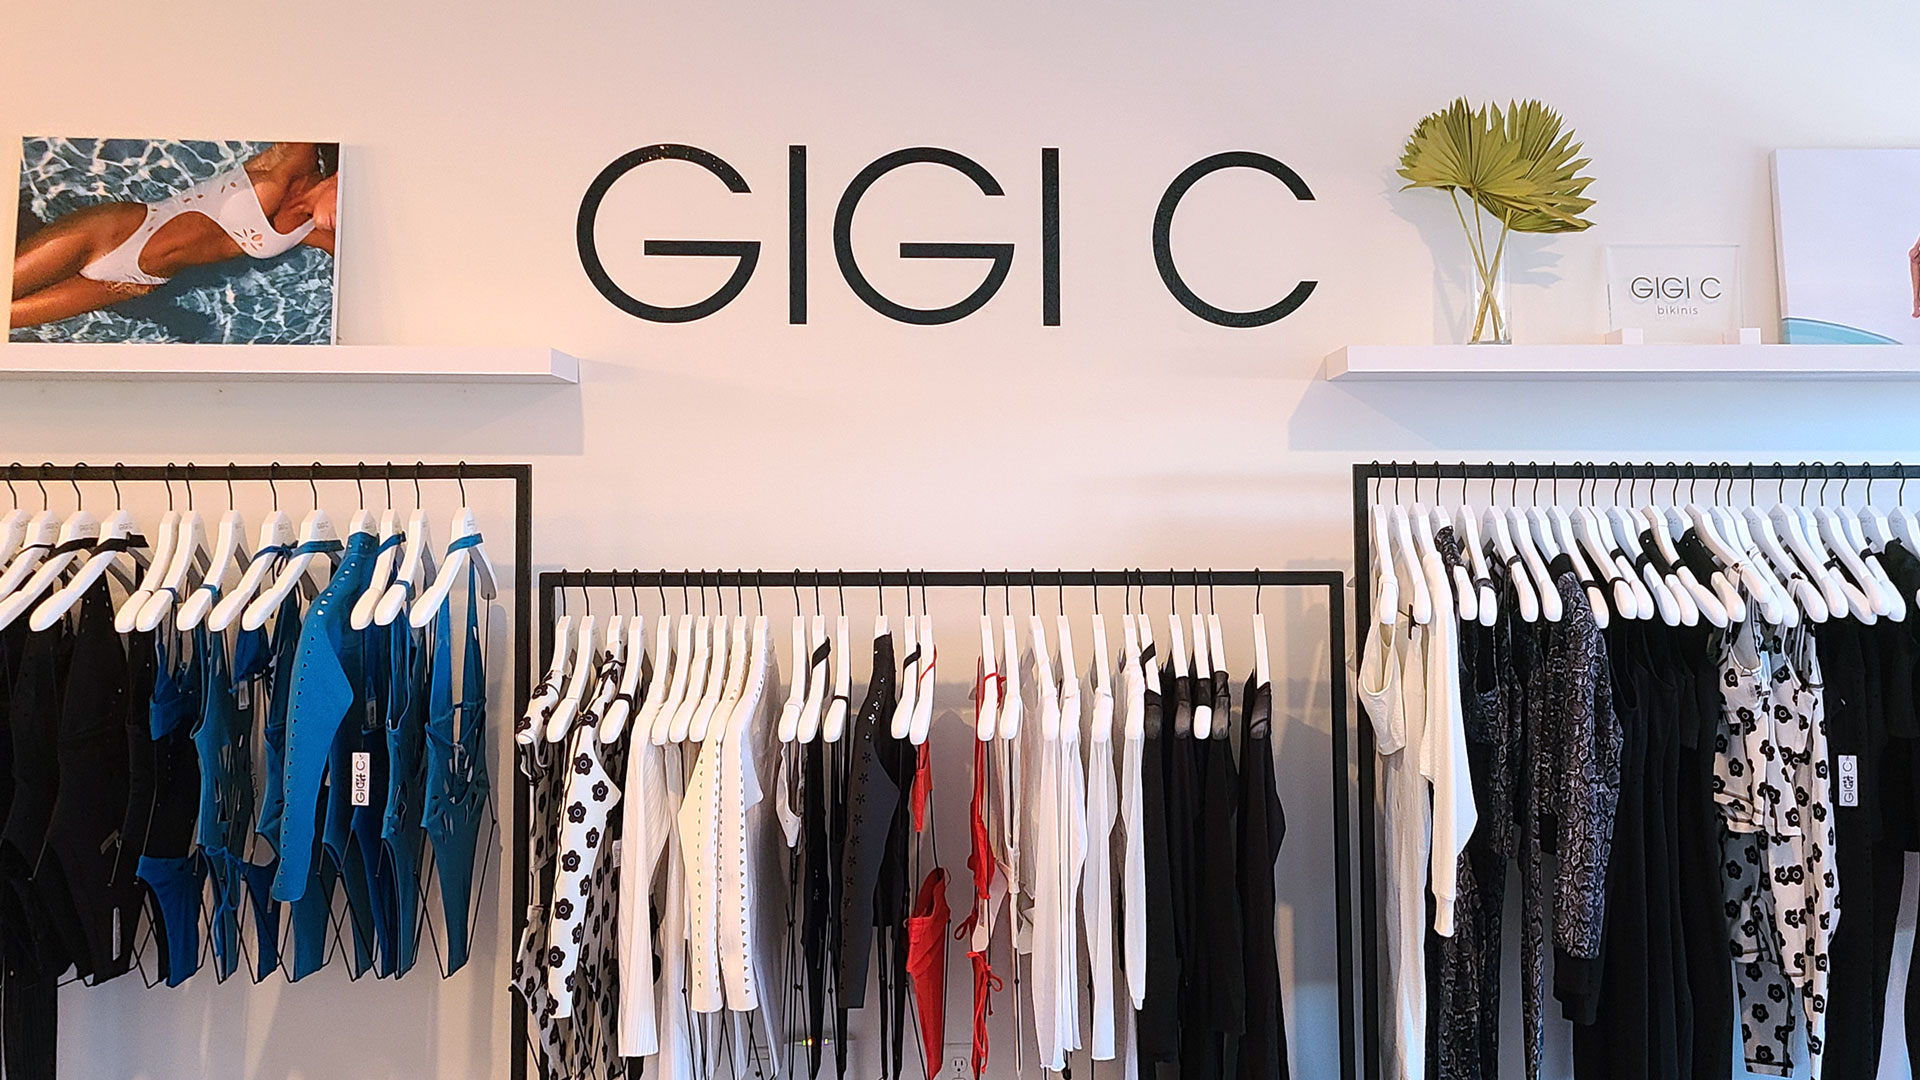 Gigi C custom interior wall lettering signage displaying the name of the company made of opaque vinyl for store branding